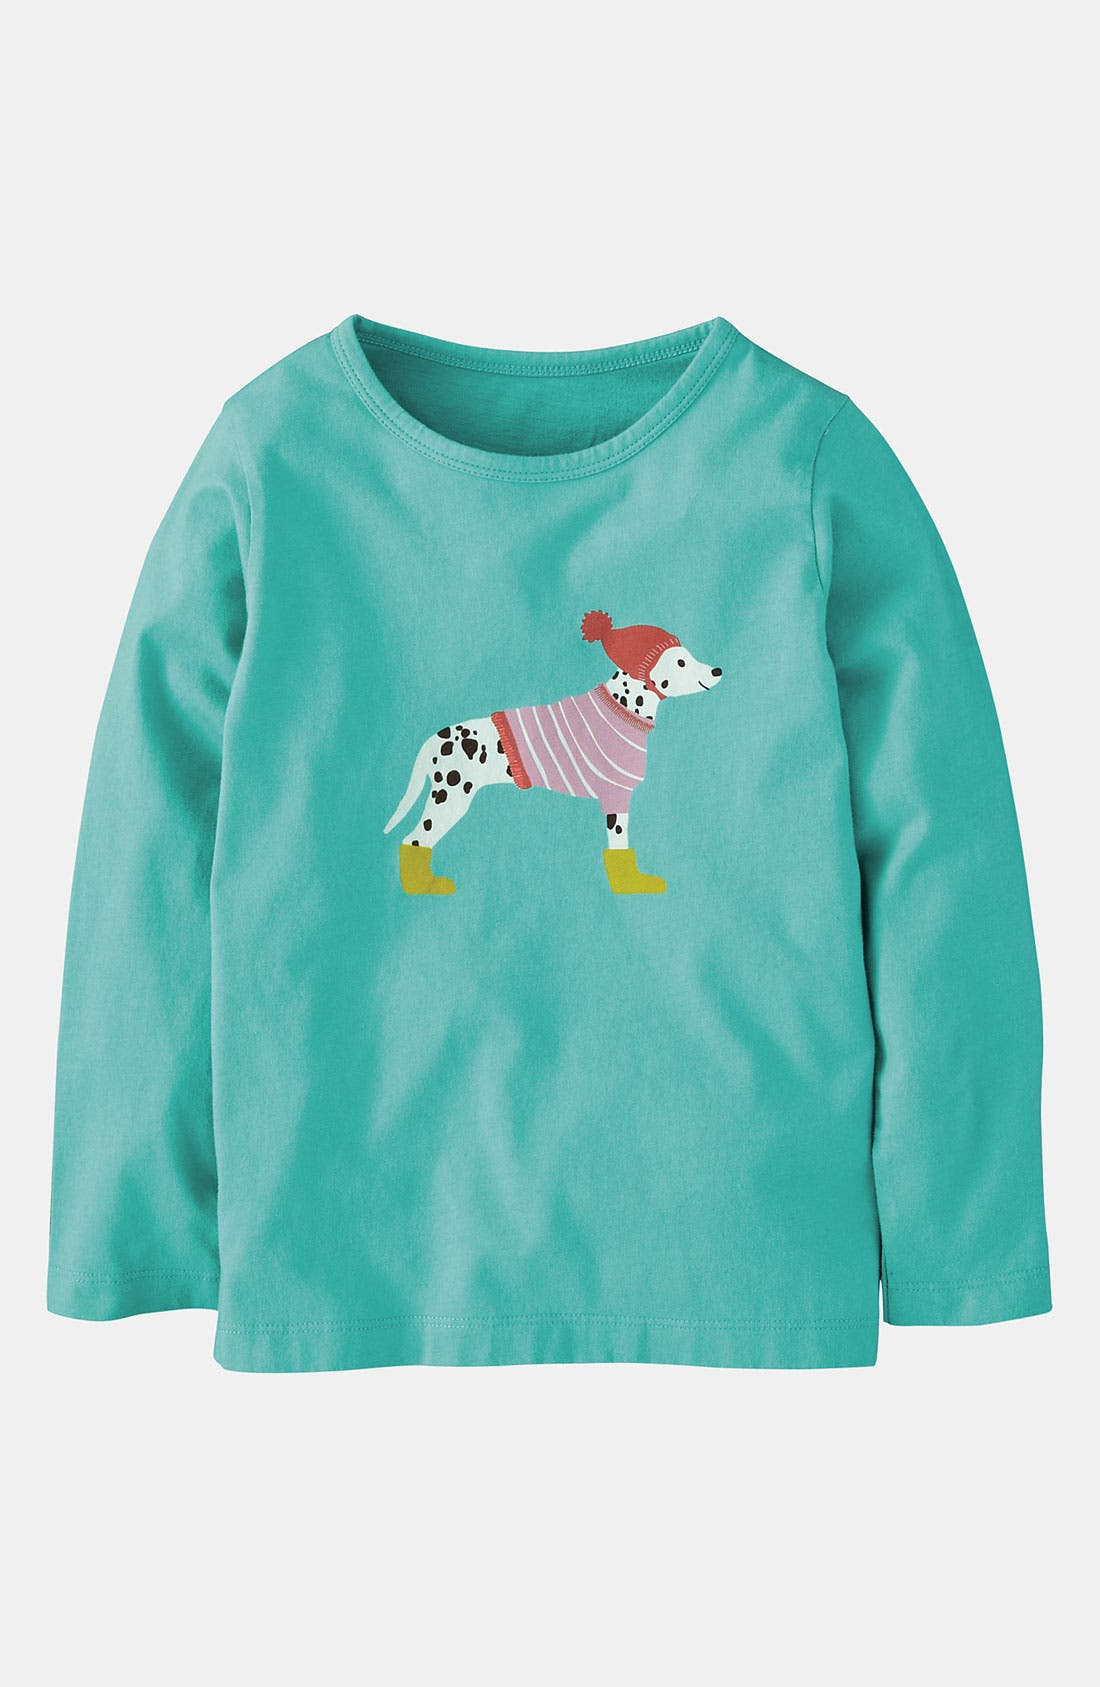 Main Image - Mini Boden 'Winter Wooly Pet' Tee (Toddler, Little Girls & Big Girls)